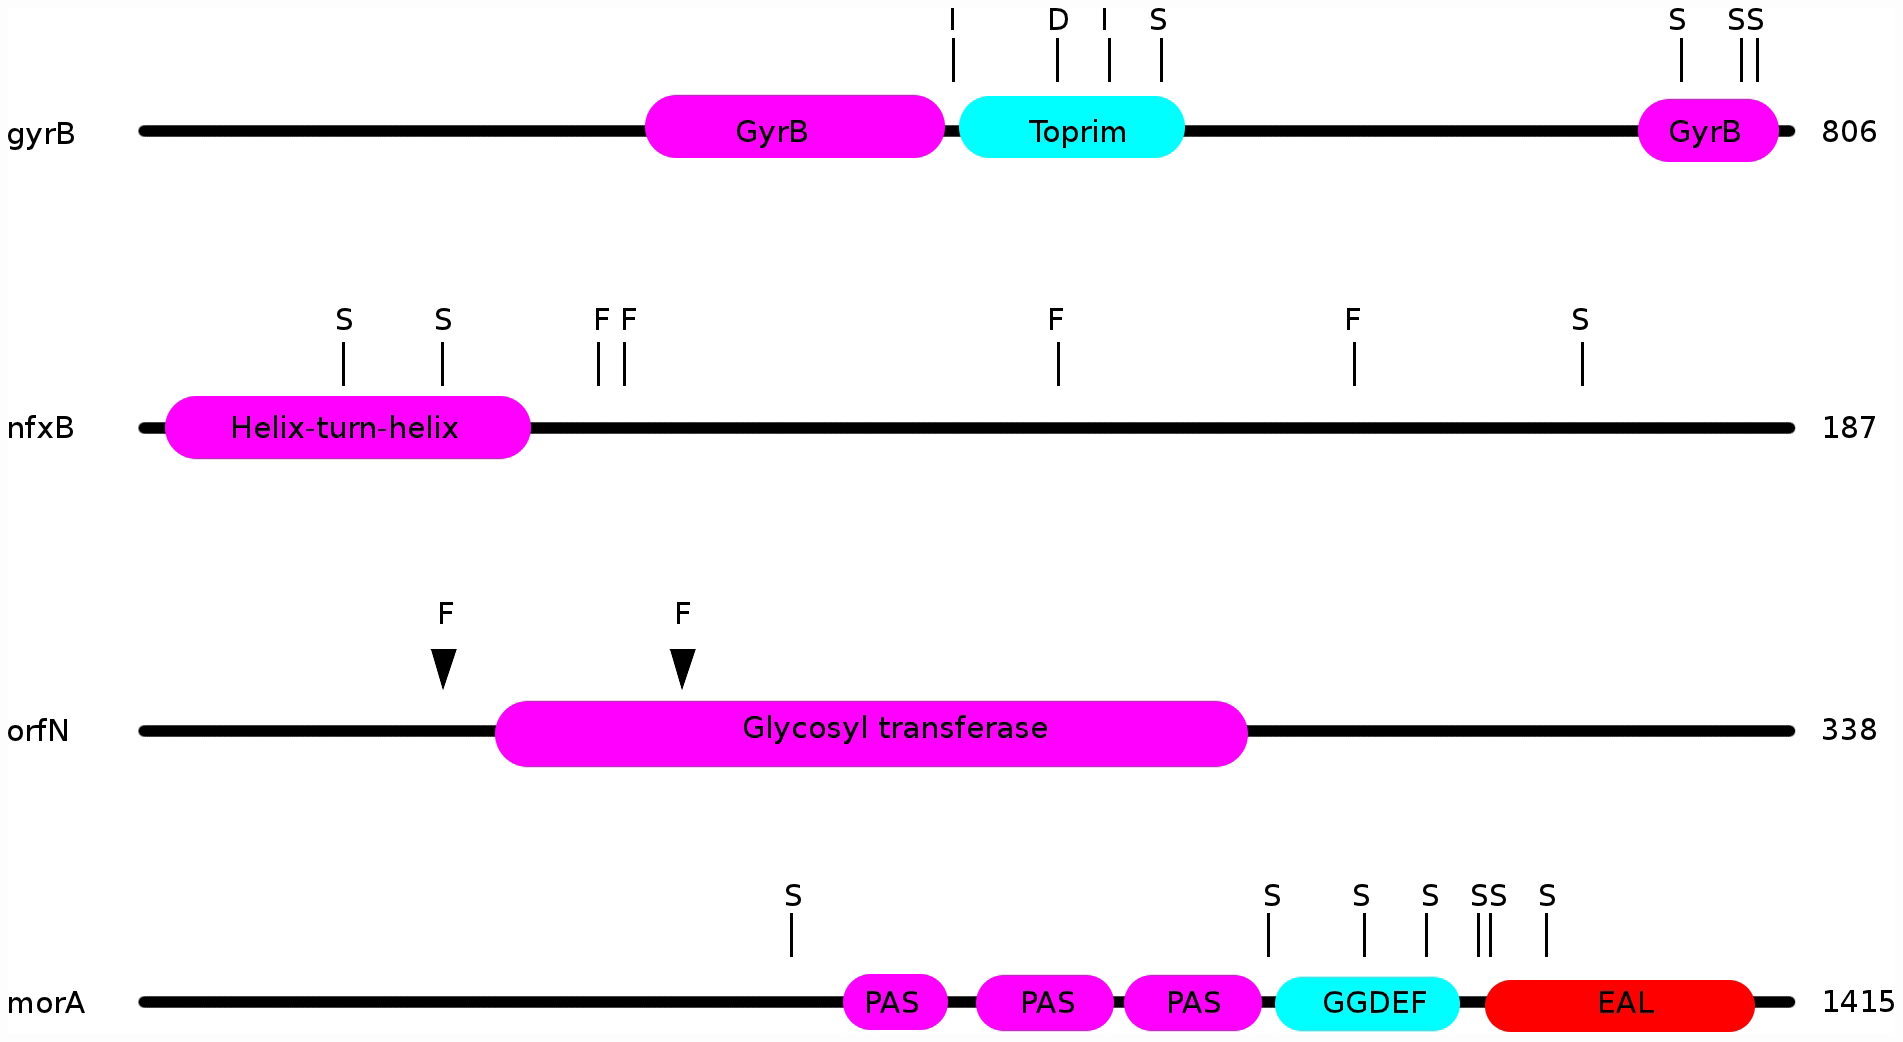 Locations of mutations in the ciprofloxacin resistance proteins nfxB, orfN, gyrB, and in the putatively mucin-adaptive protein morA.